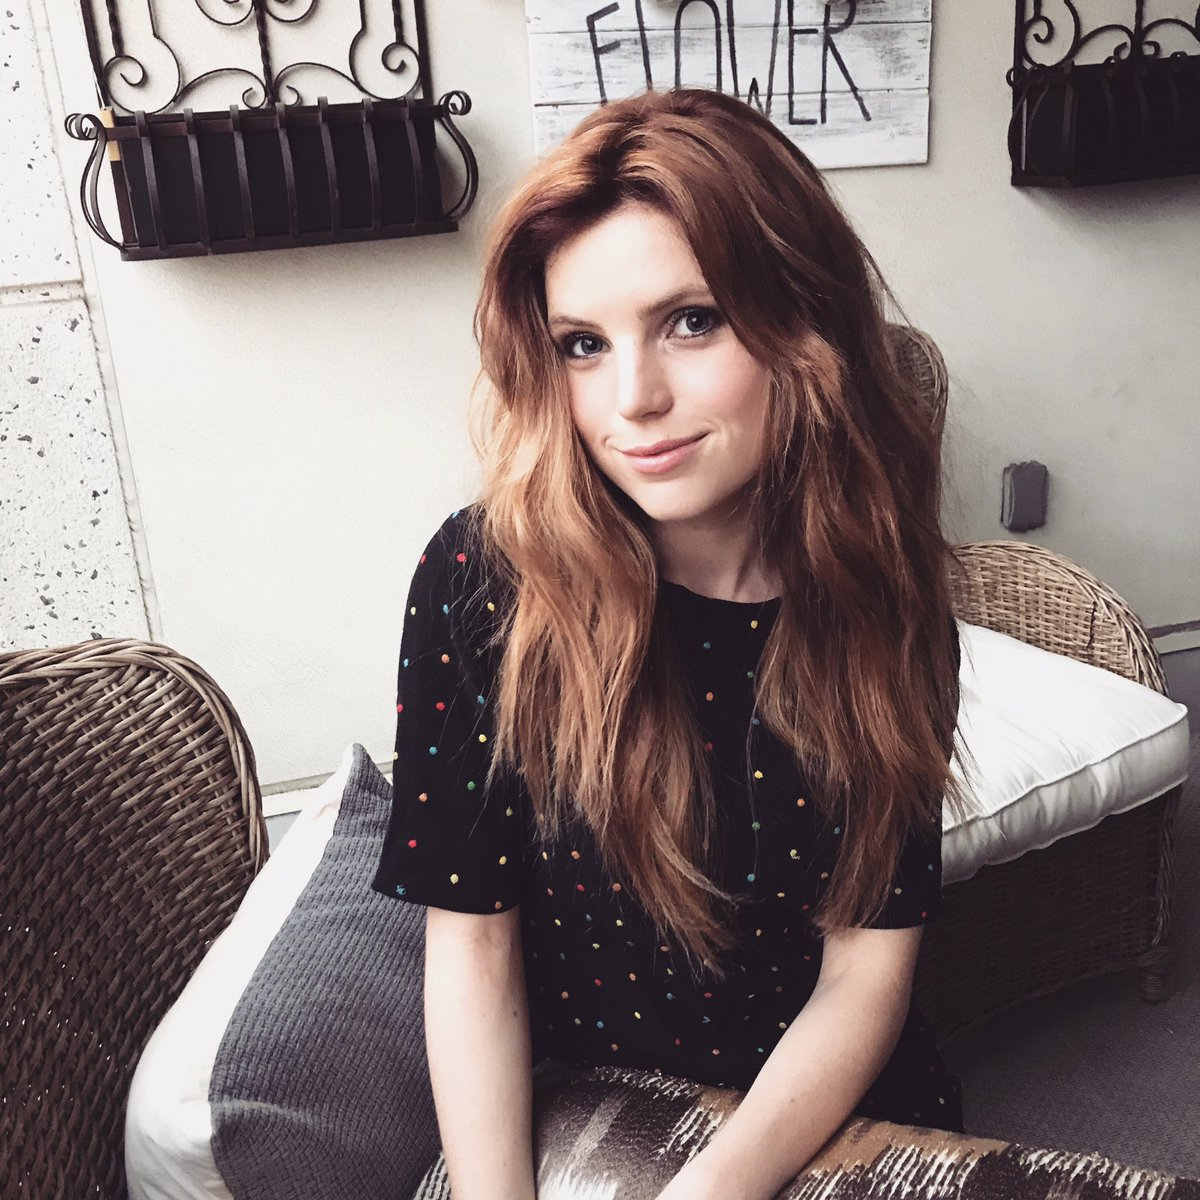 butt Pictures Sydney Sierota naked photo 2017